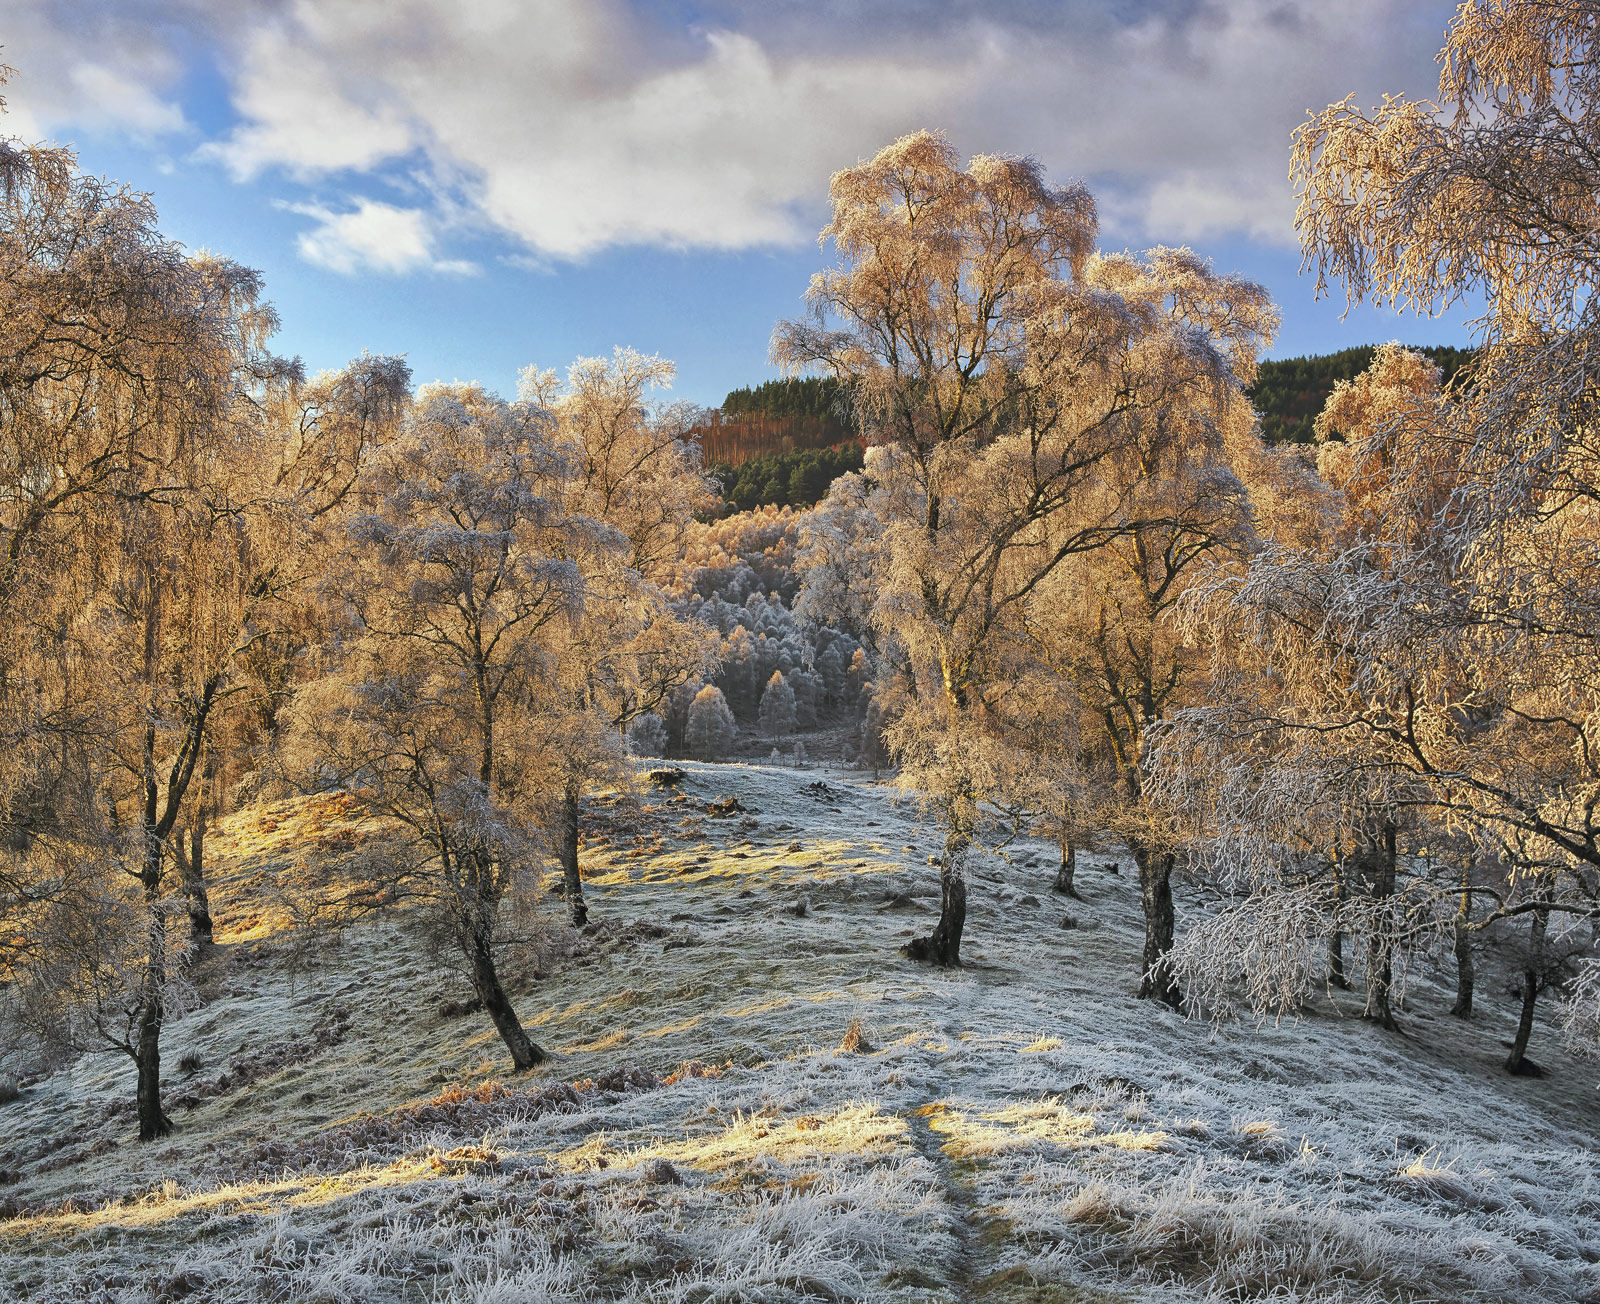 A golden cloak of backlit silver birch trees thickly coated with hoar frost diffuses the setting sun turning them to drizzled...